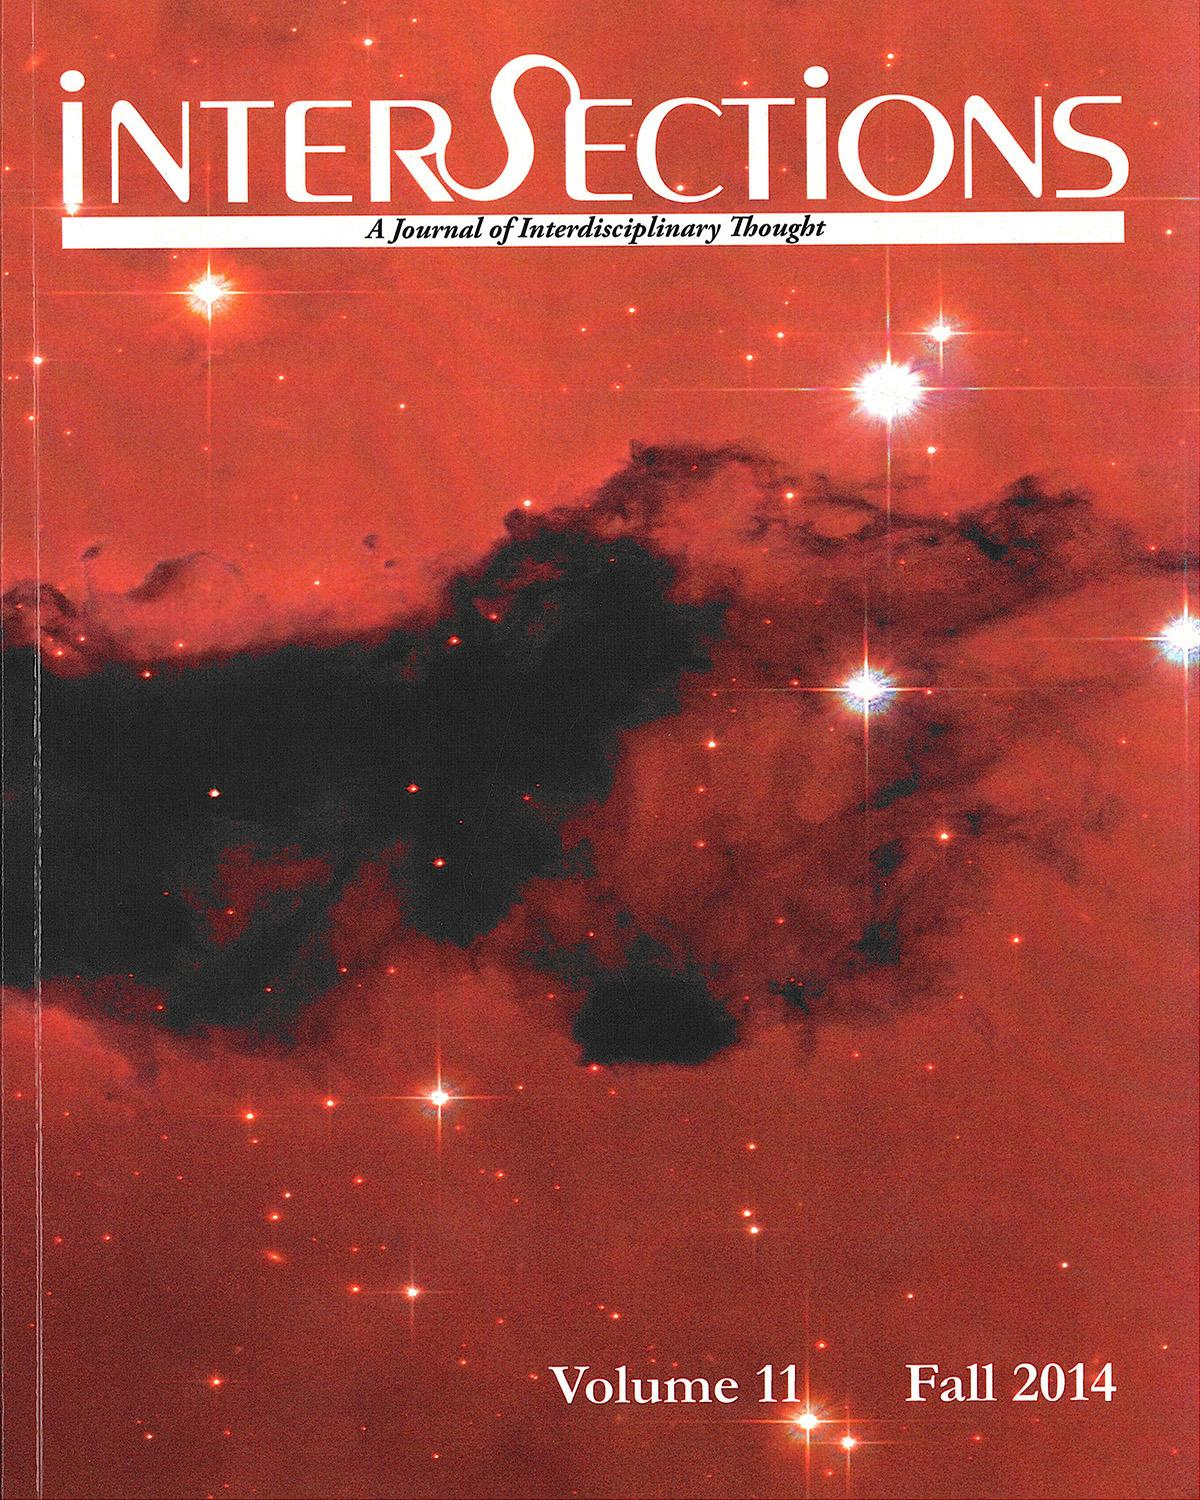 Intersections Volume 11 Issue 1